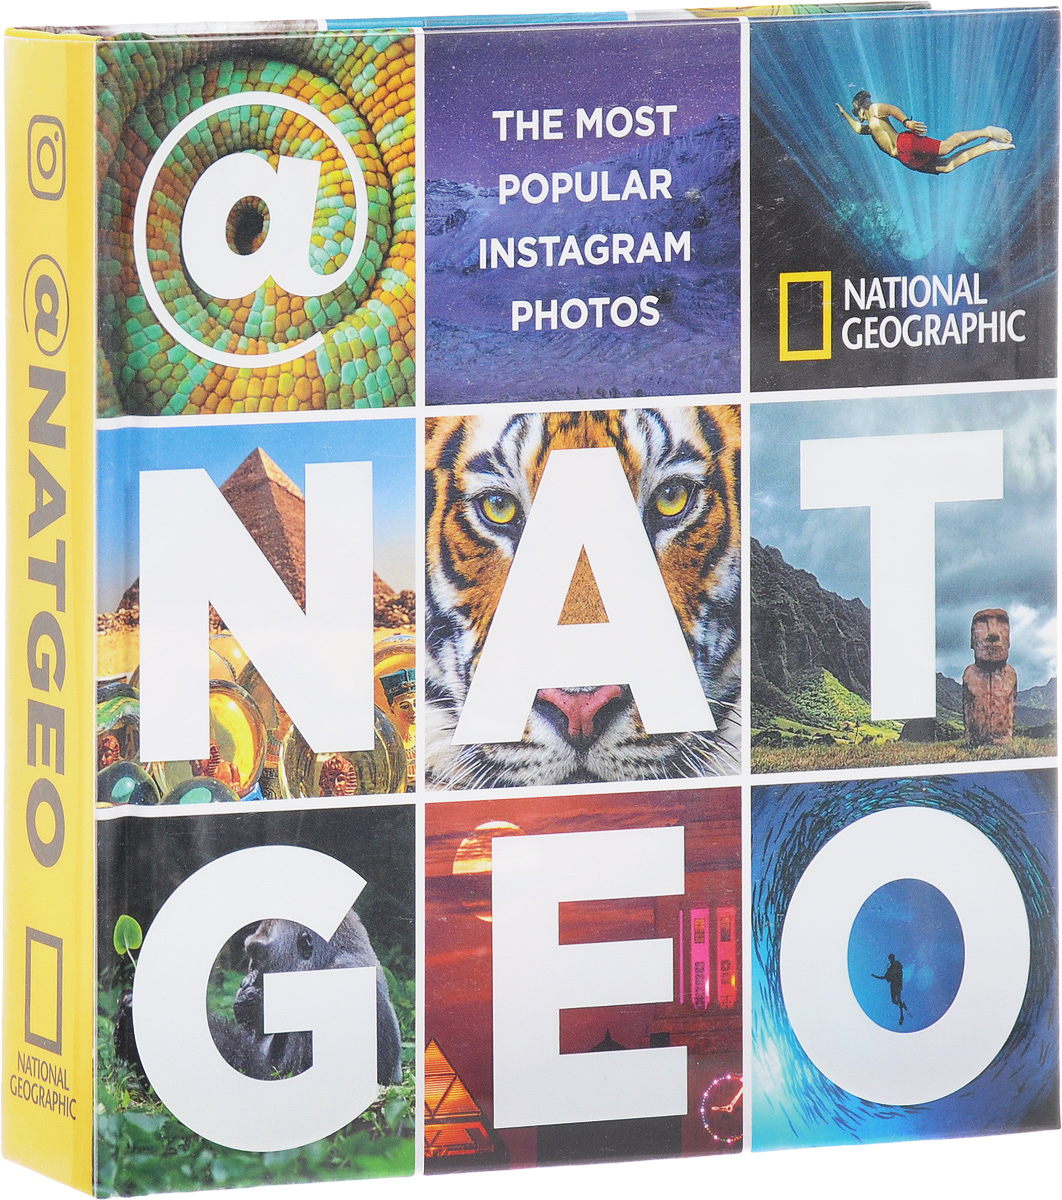 @natgeo: The Most Popular Instagram Photos the most exciting national wind a 100